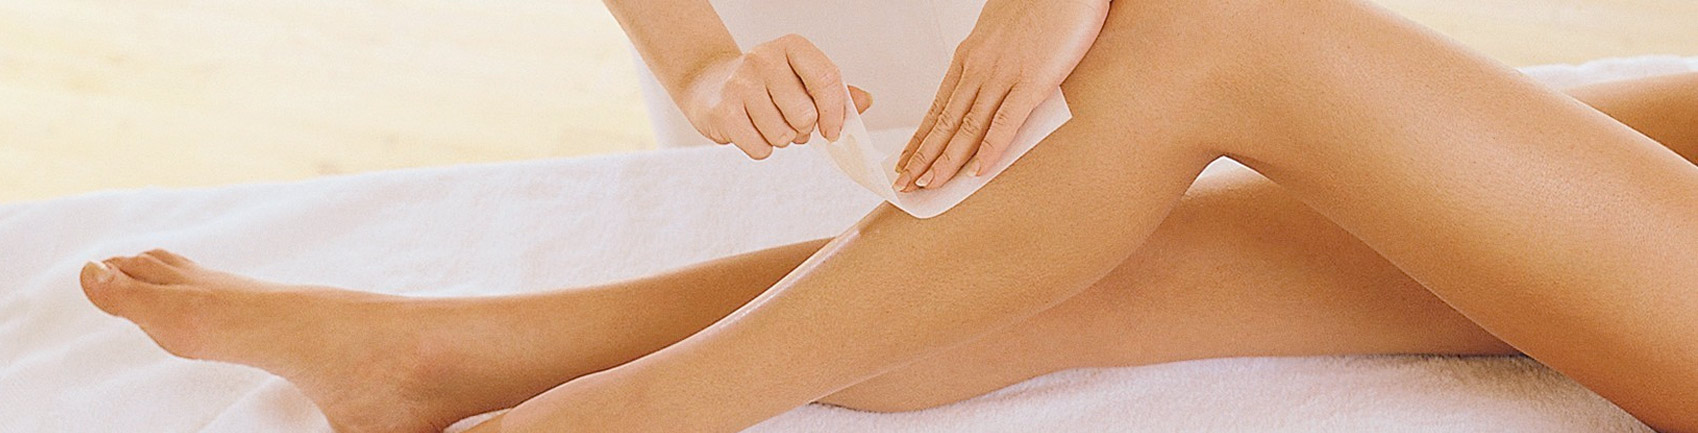 BEAUTY SALON TREATMENTS